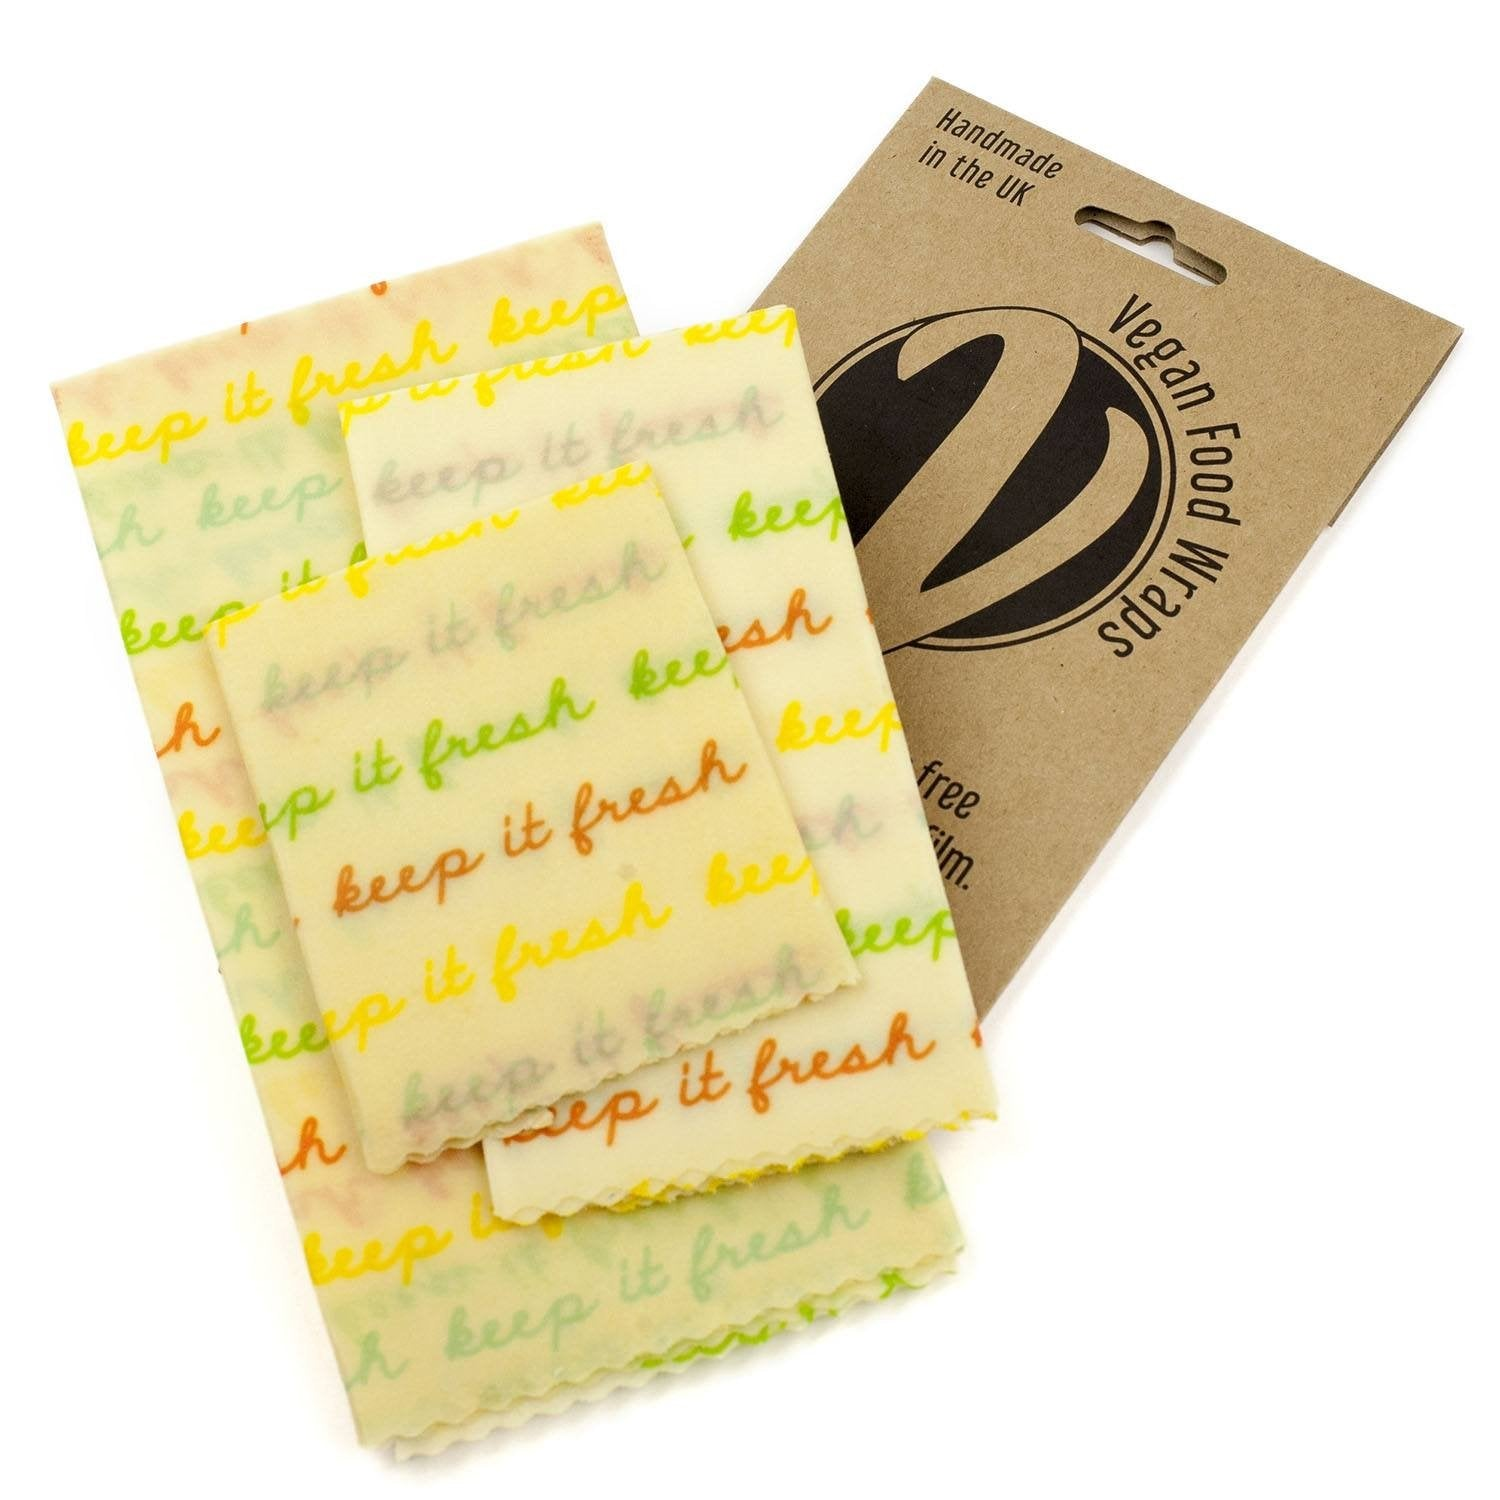 Billede af Vegan Food Wraps, Medium Kitchen Pack - 3 wraps